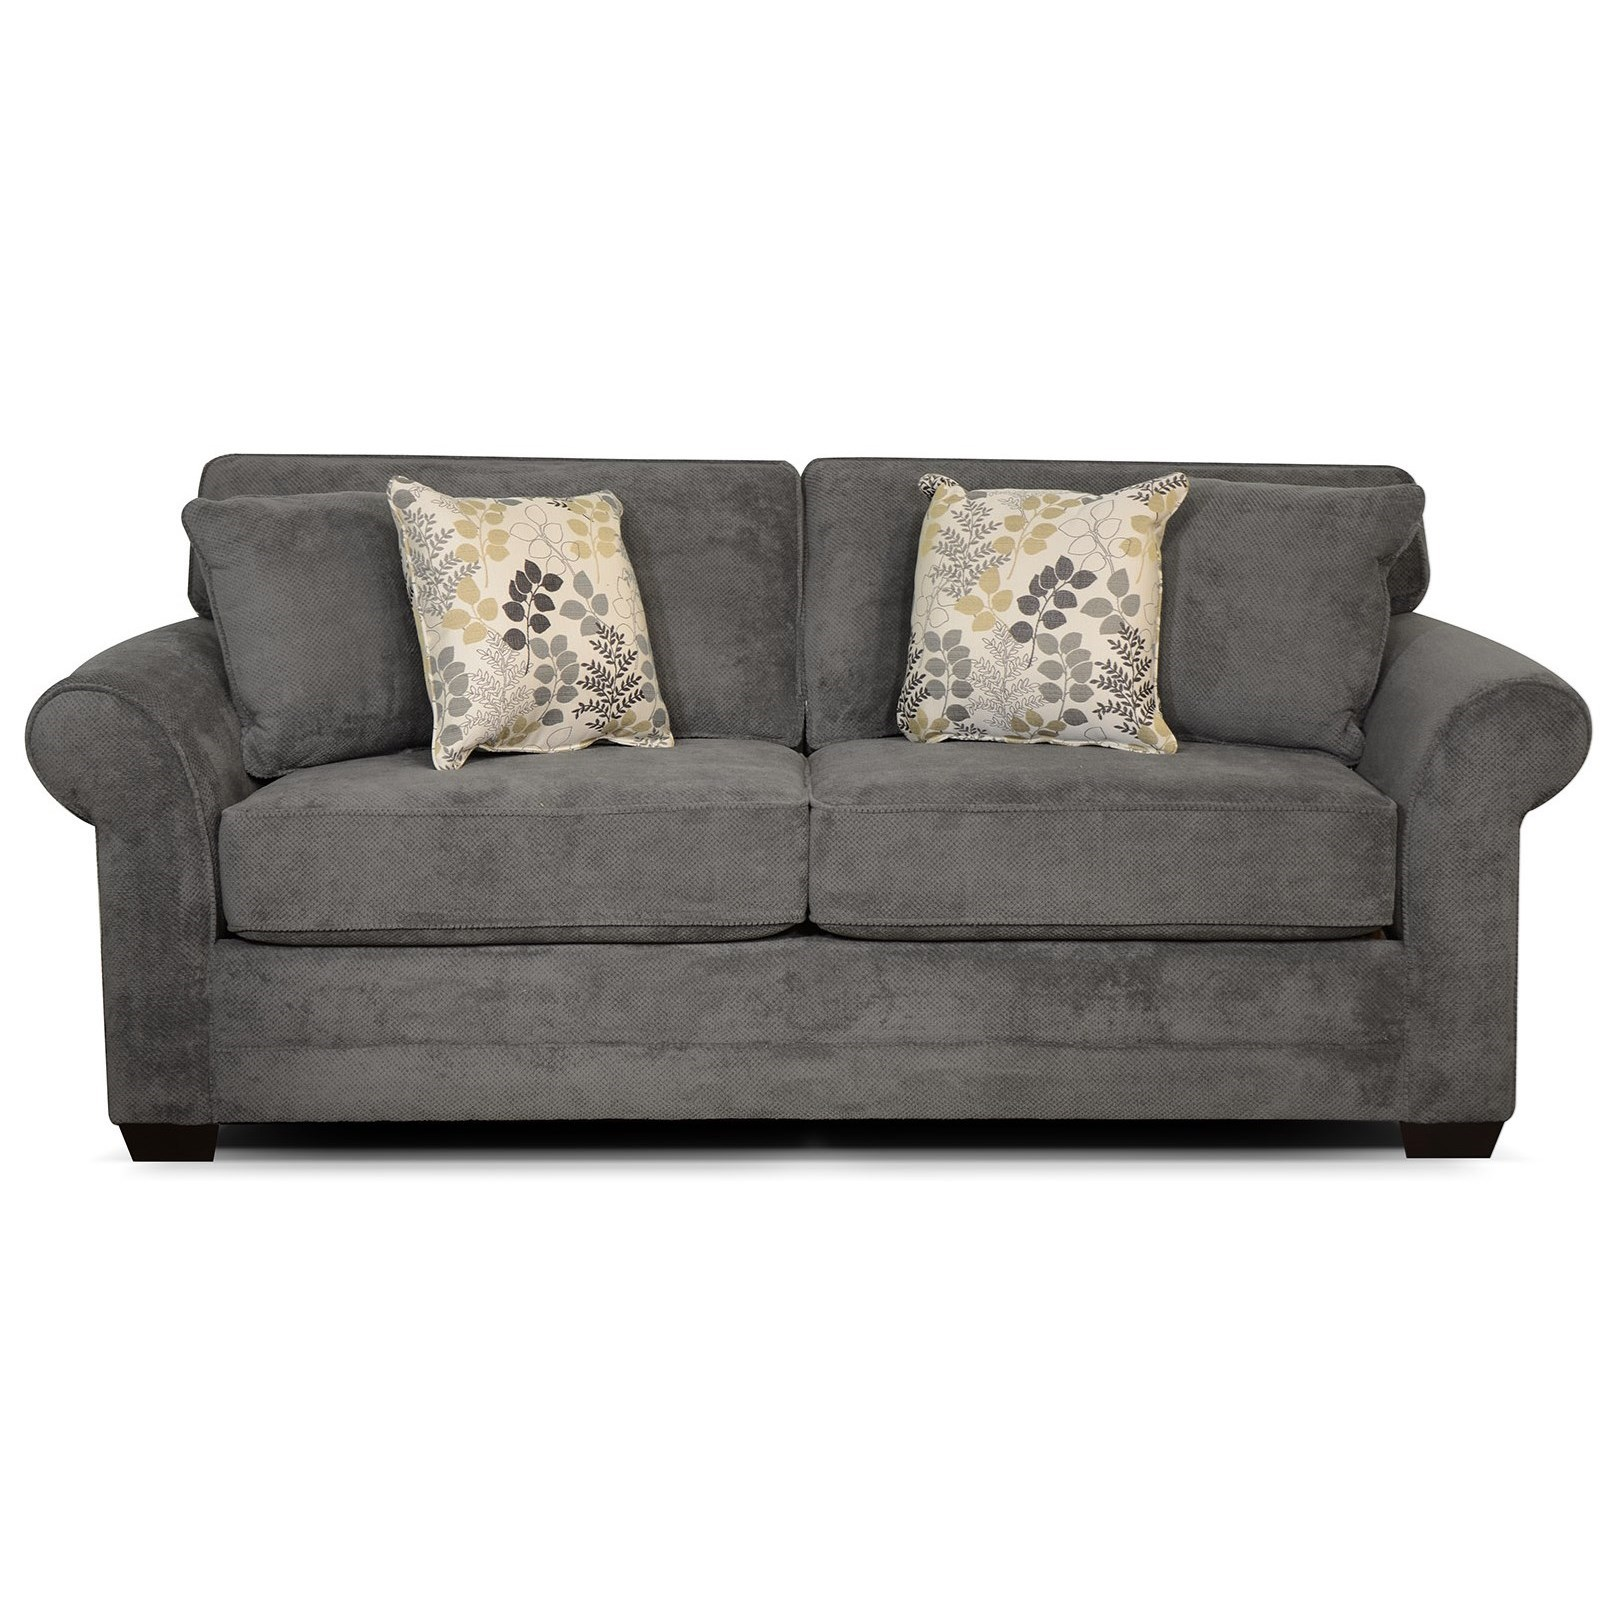 Brantley Upholstered Sofa by England at Goffena Furniture & Mattress Center